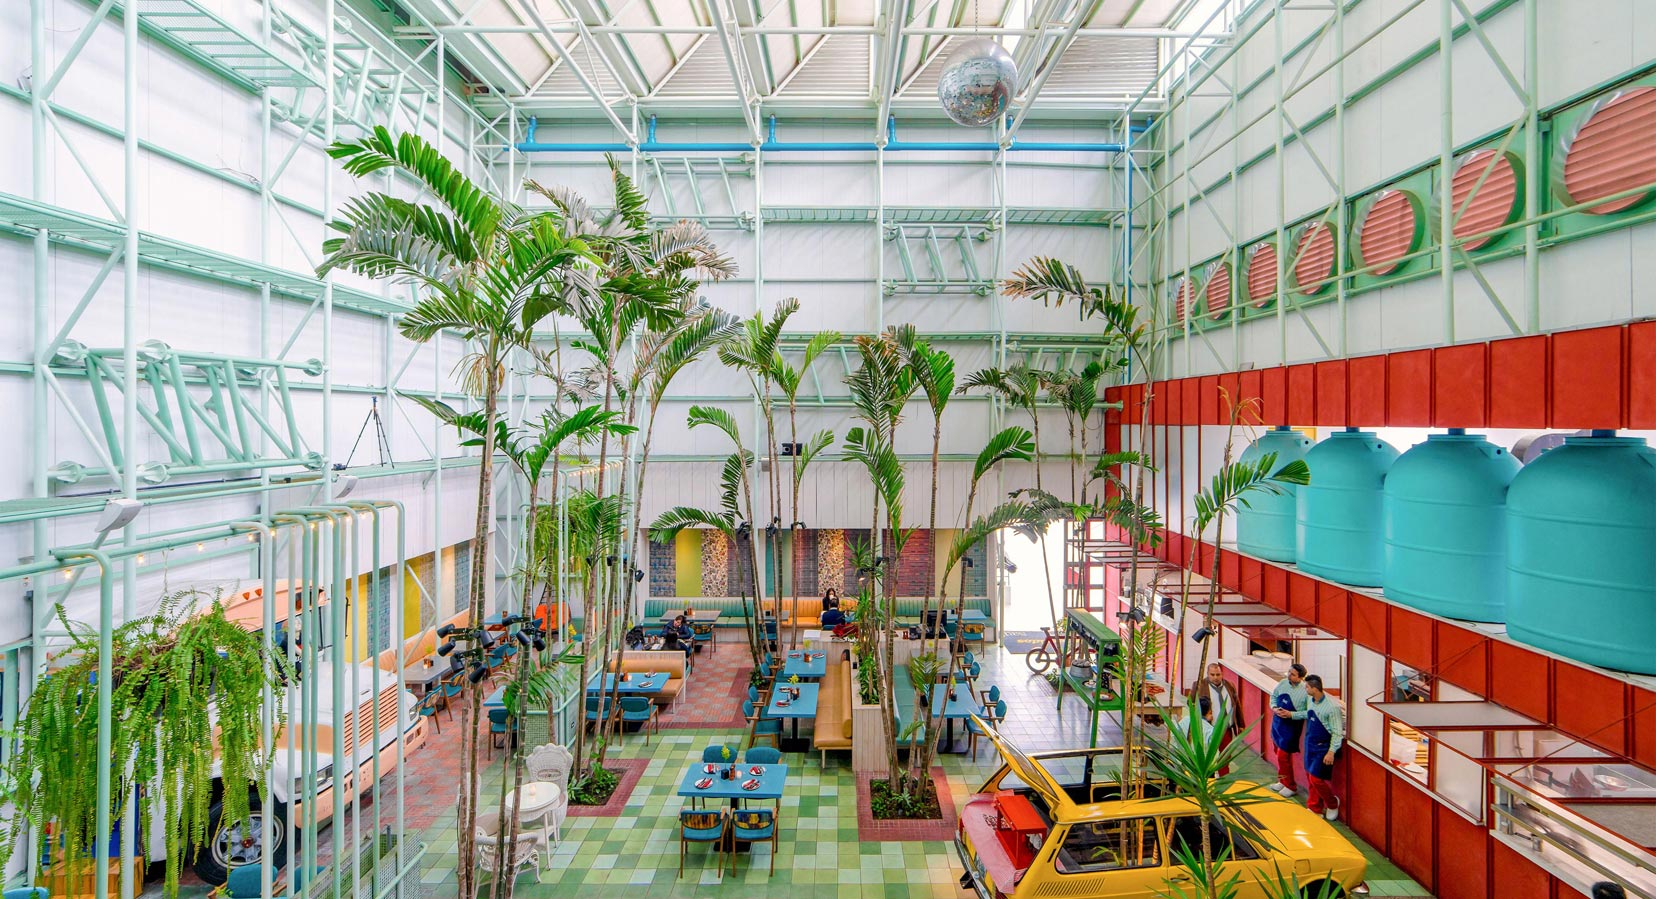 An Urban Oasis: Taller Ken Transforms Madero Café with Tropical Plants & Vintage Cars